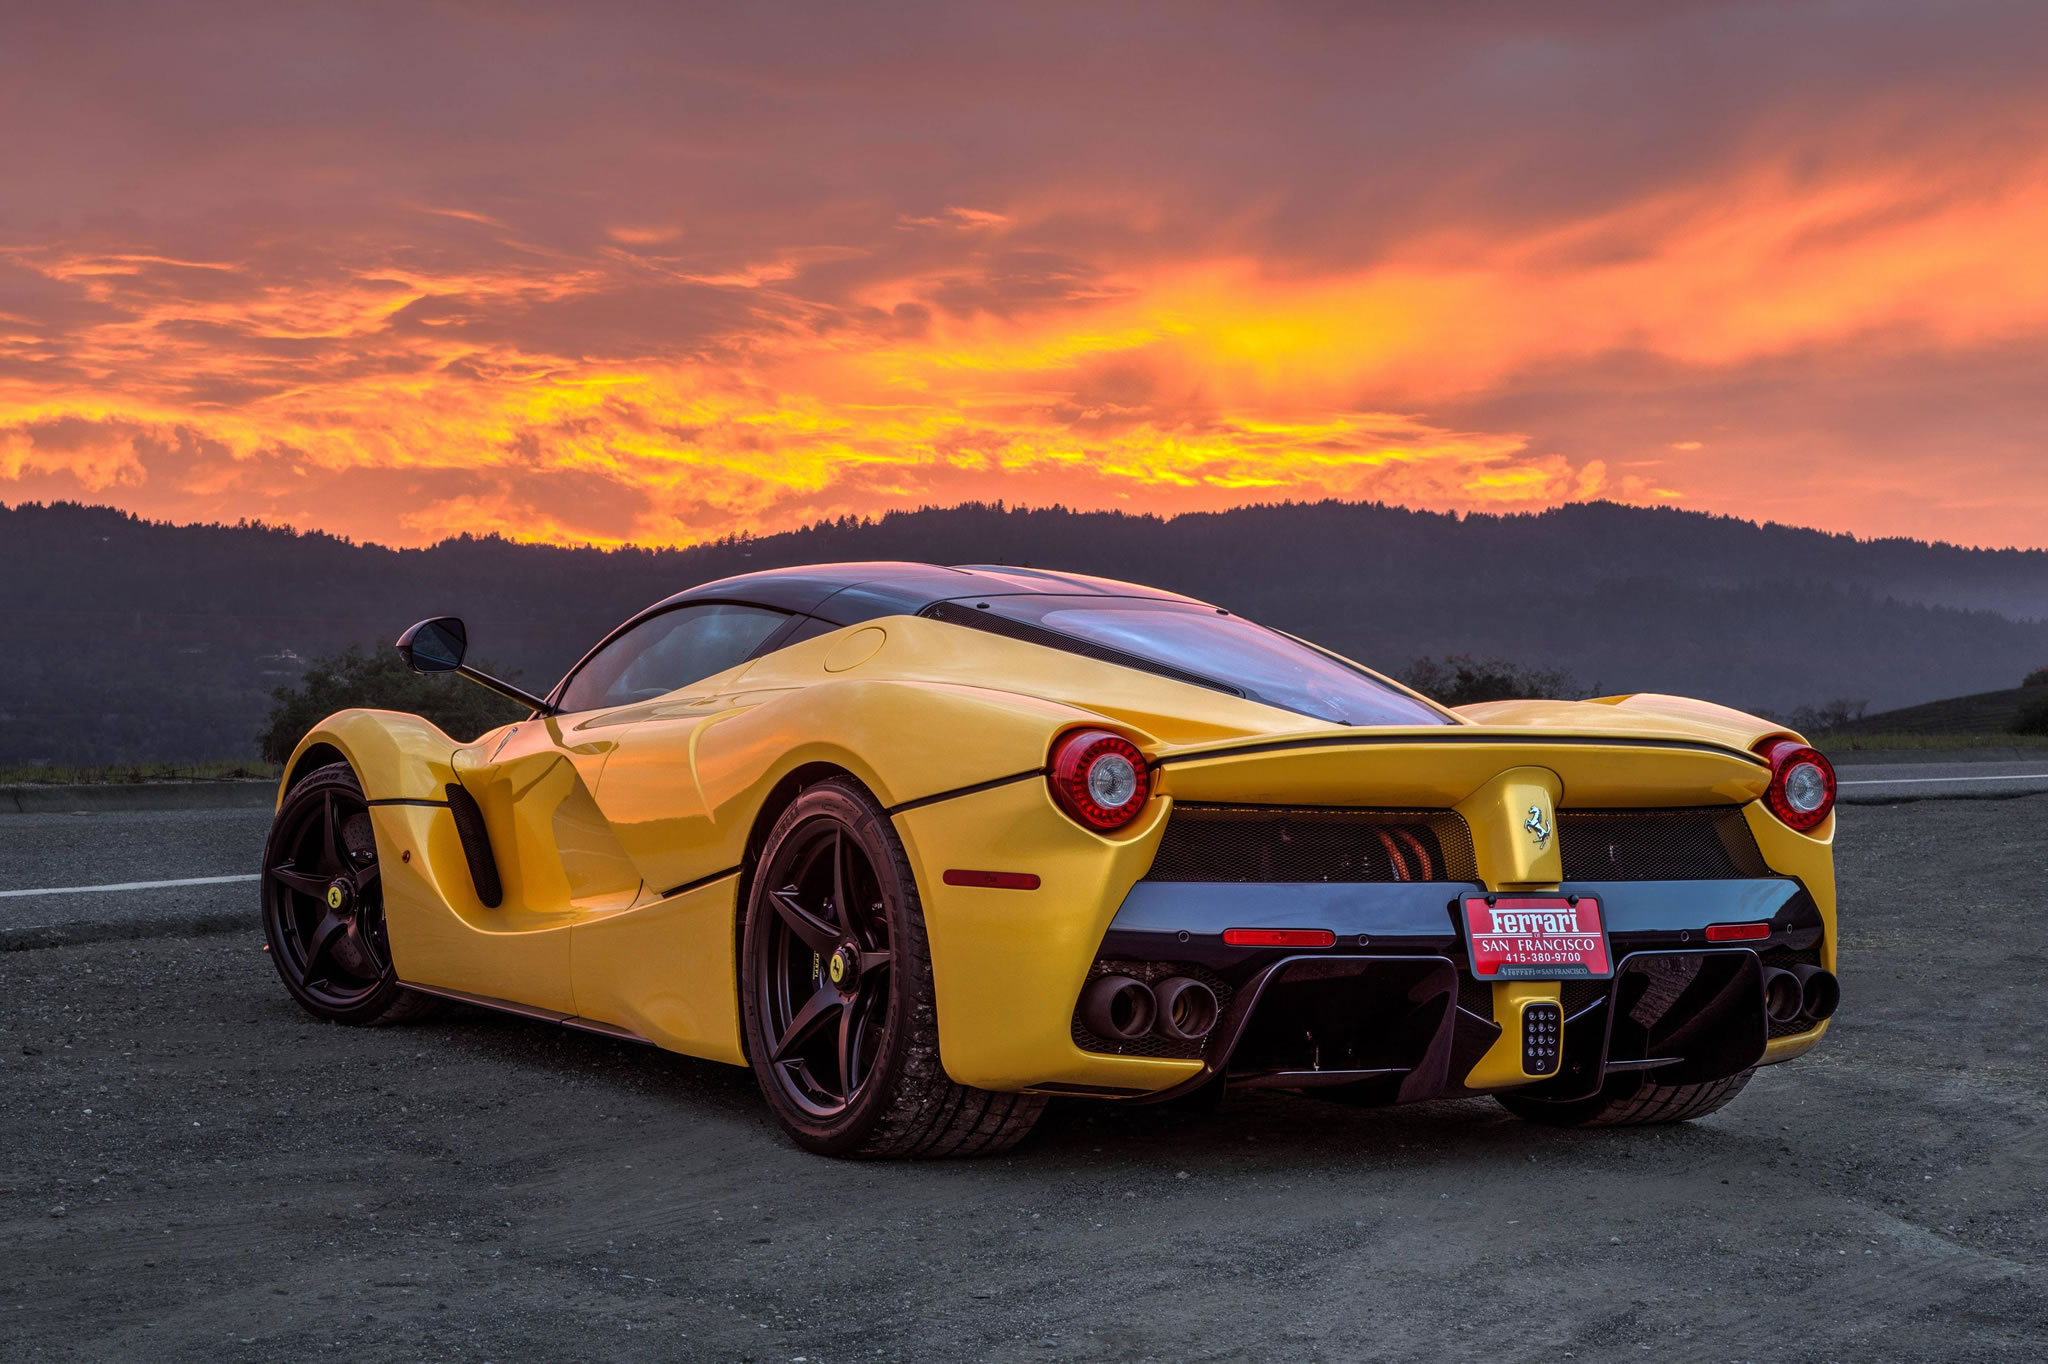 Mercedes San Francisco >> Giallo Modena Ferrari LaFerrari - yellow color, sunset, rear view, Ferrari San Francisco ...